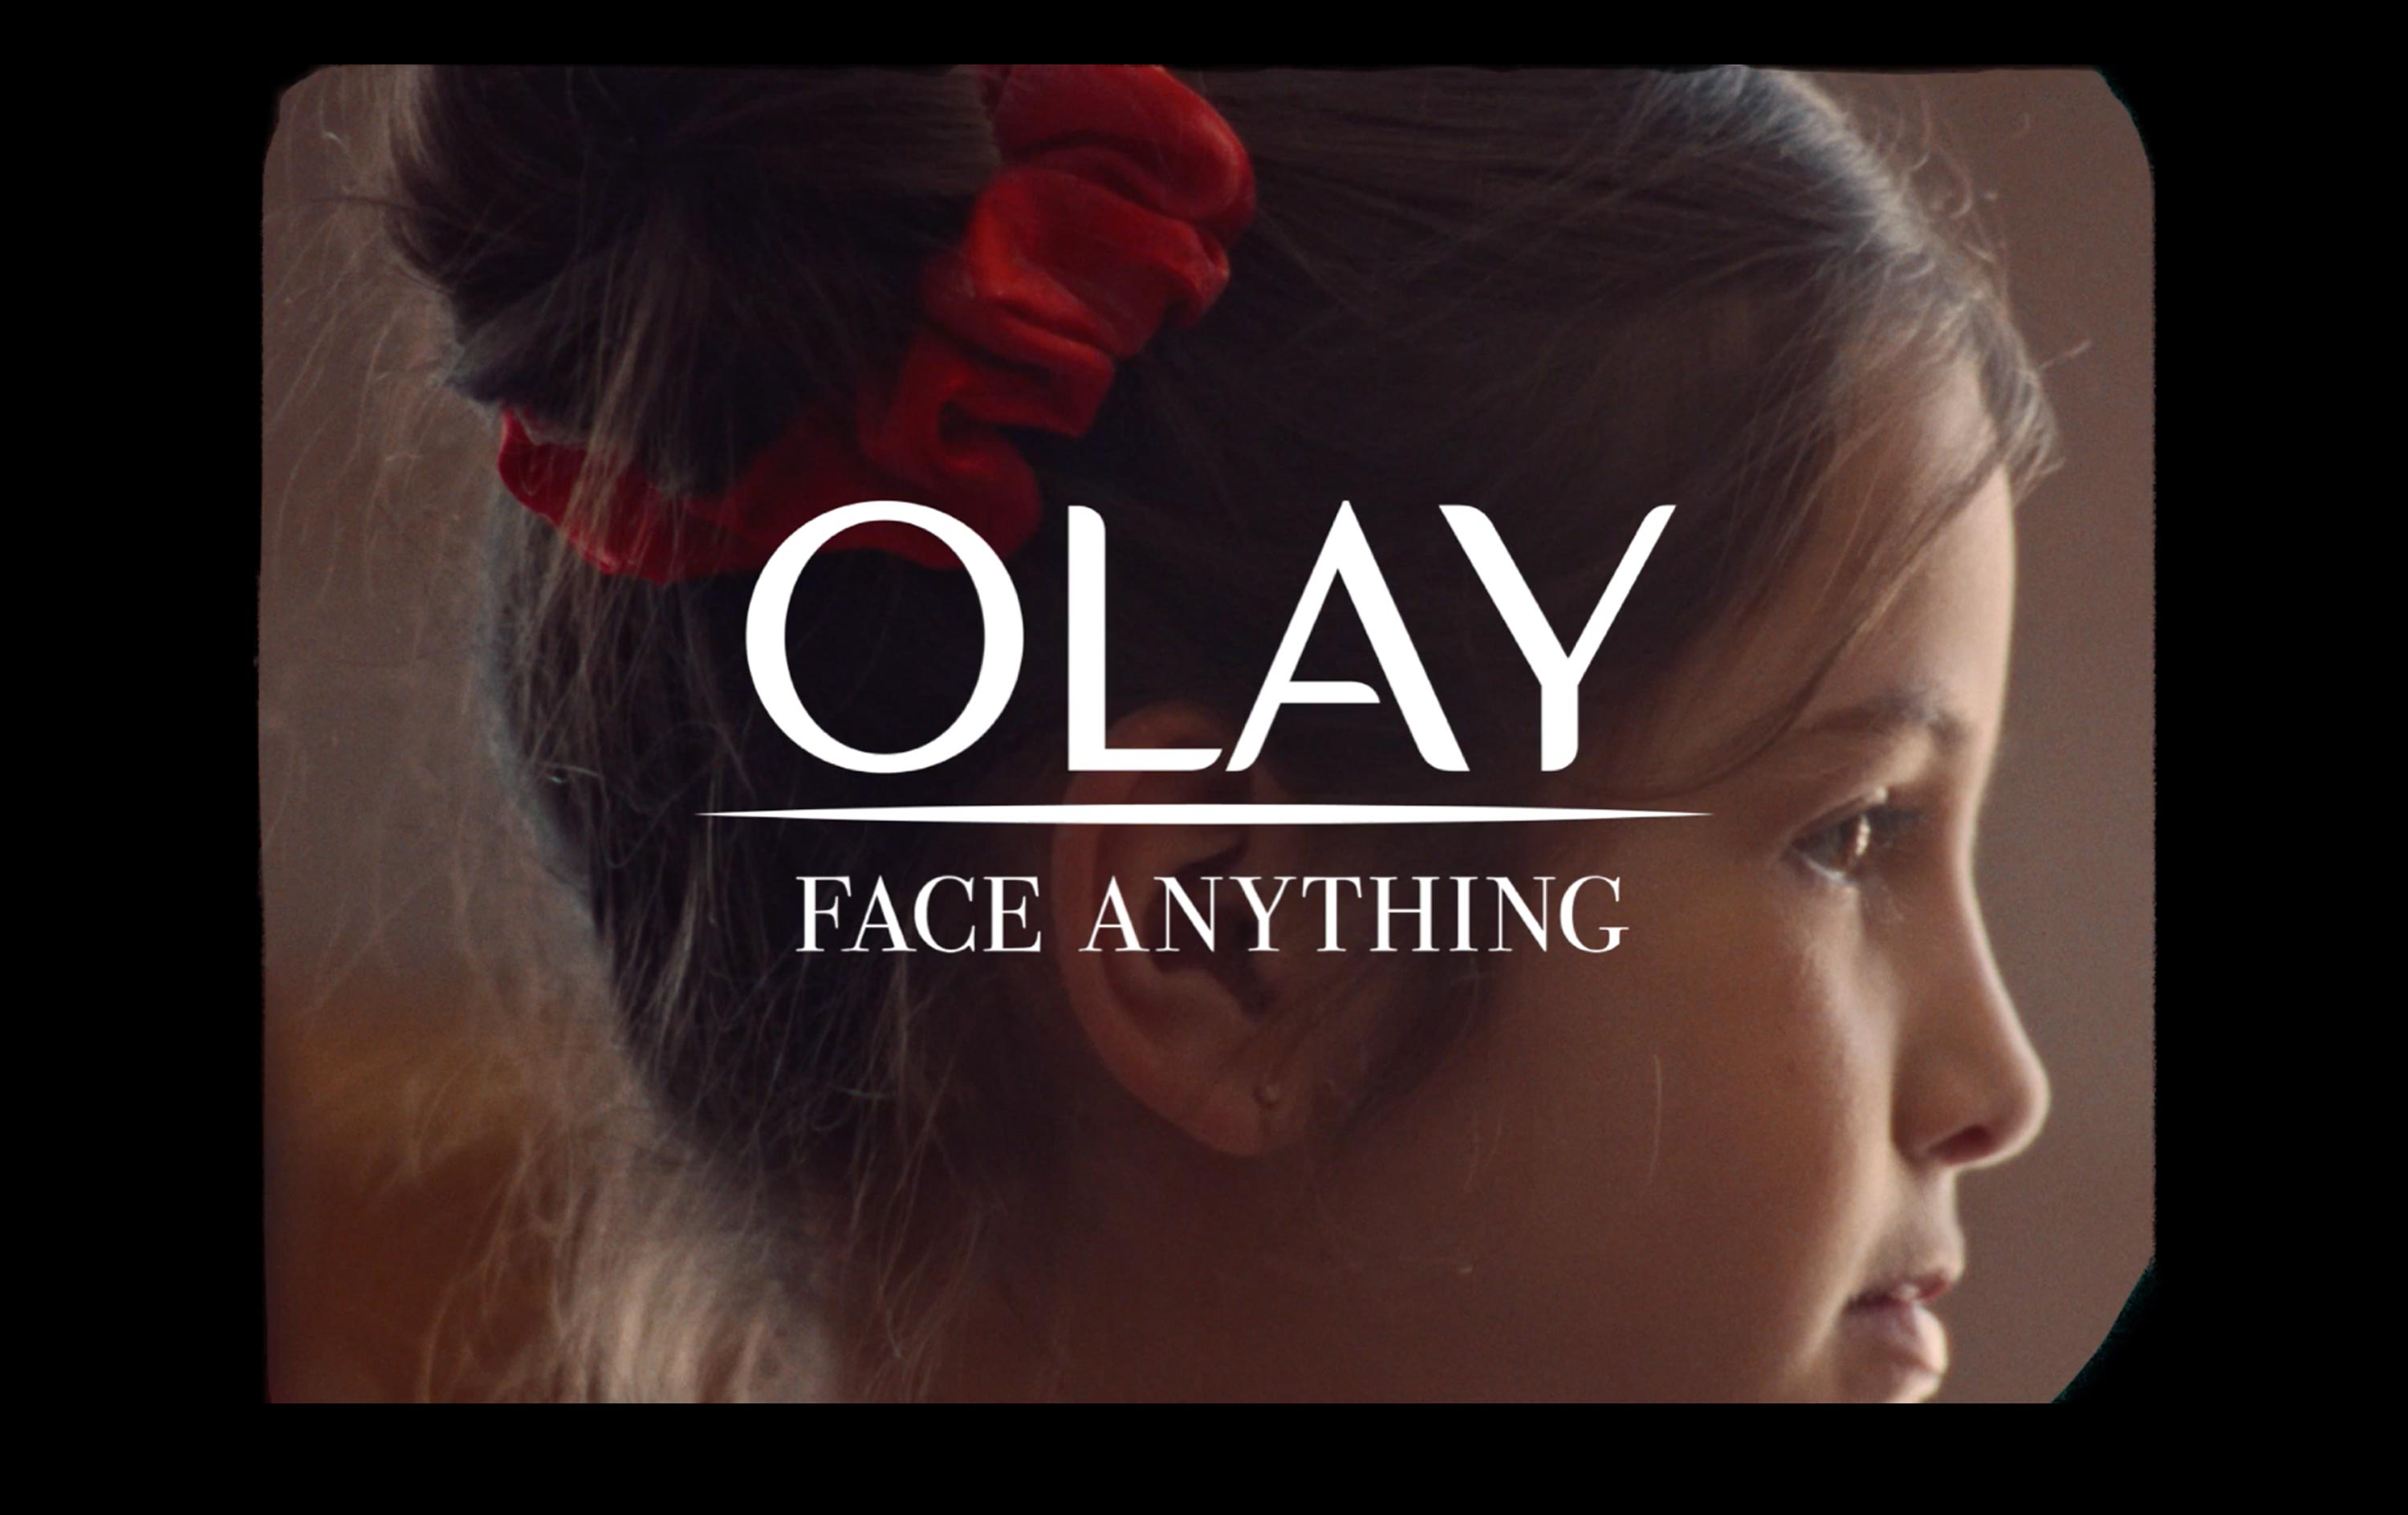 Olay Dreams video featuring Aly Raisman. Click to play